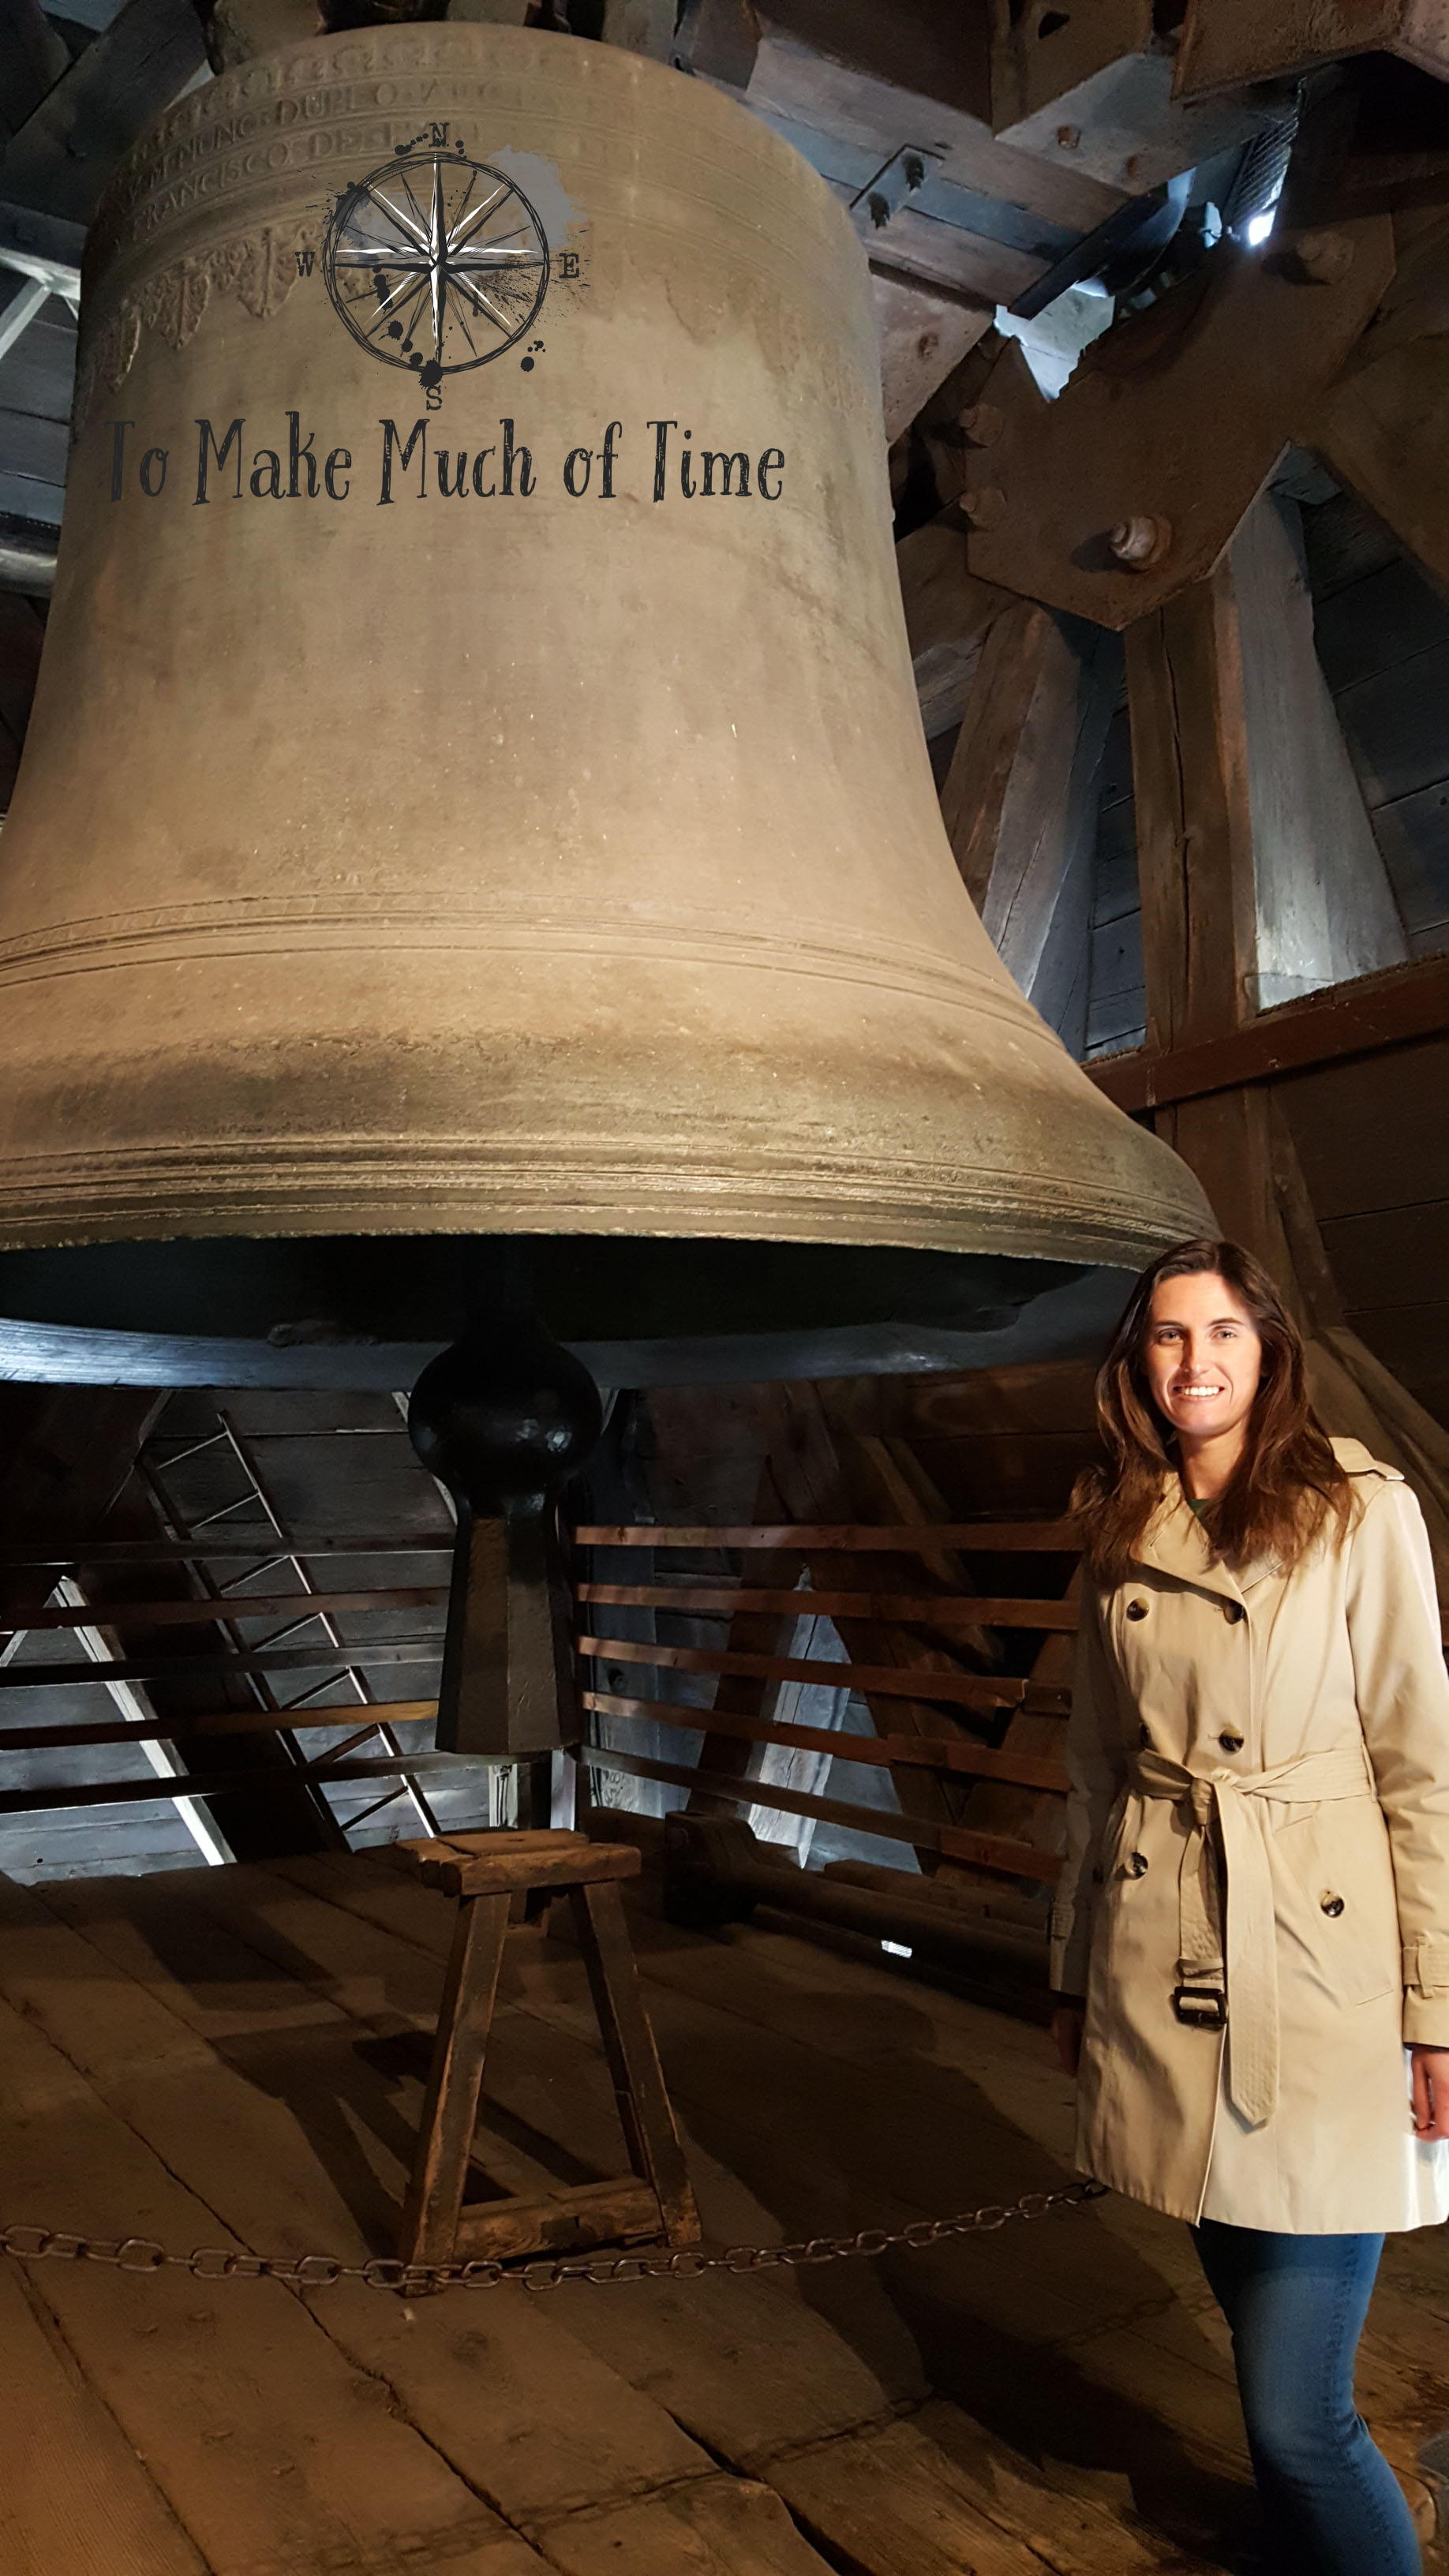 This is one giant bell!